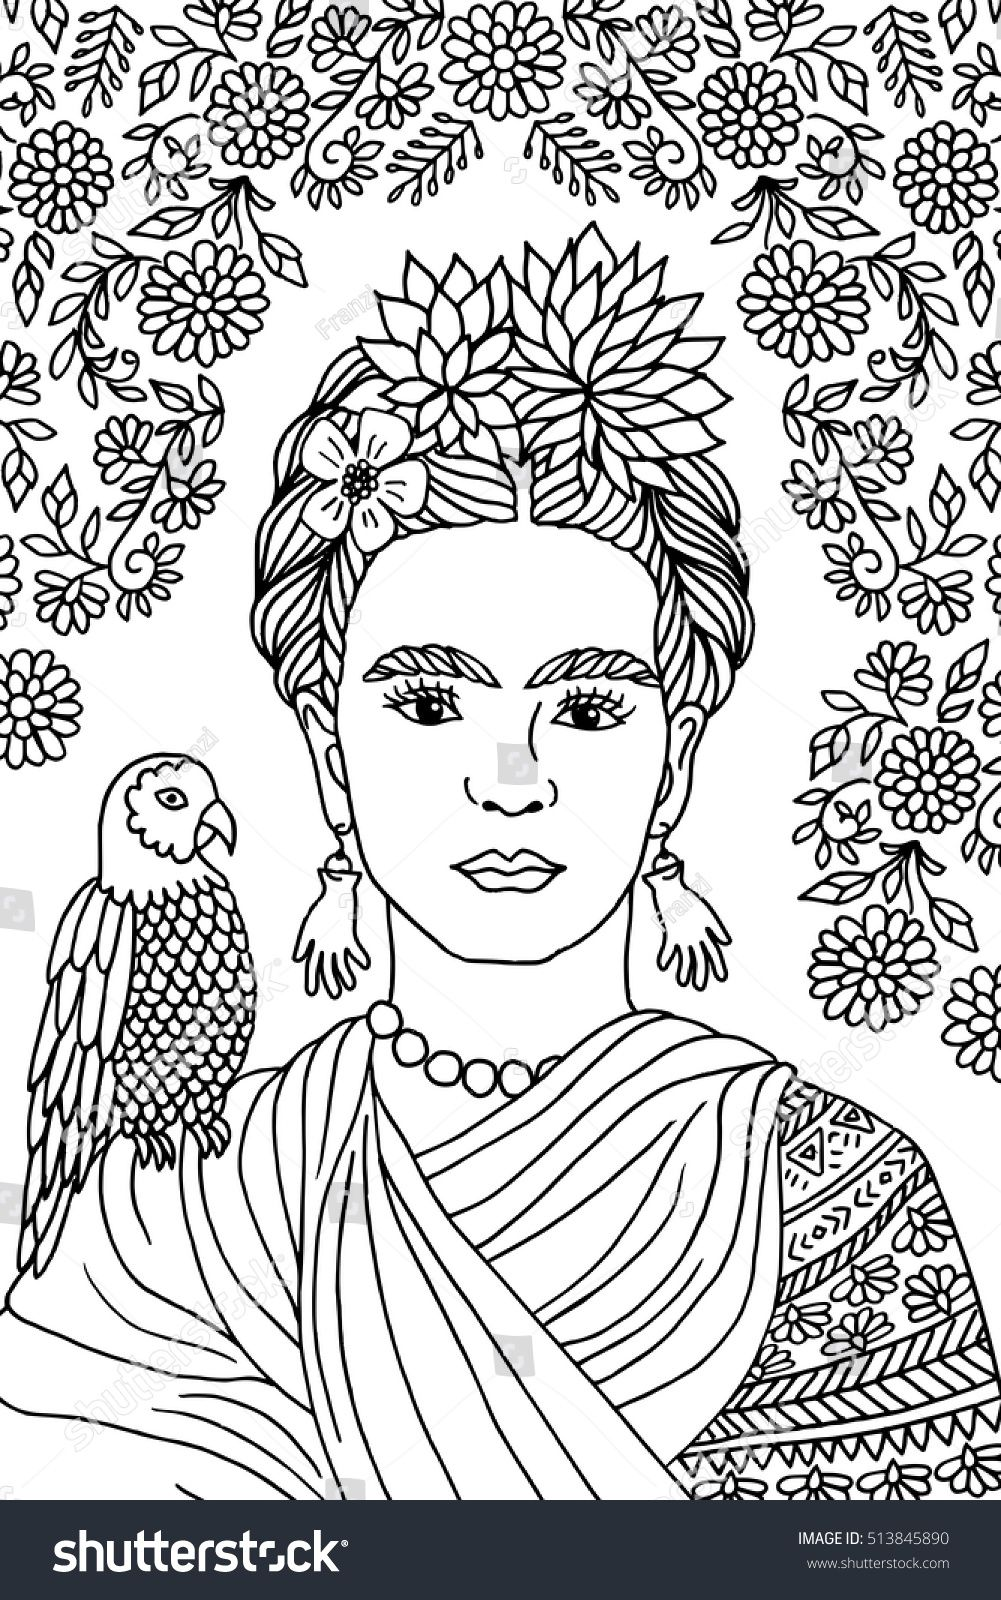 Hand drawn portrait of Frida Kahlo with floral background